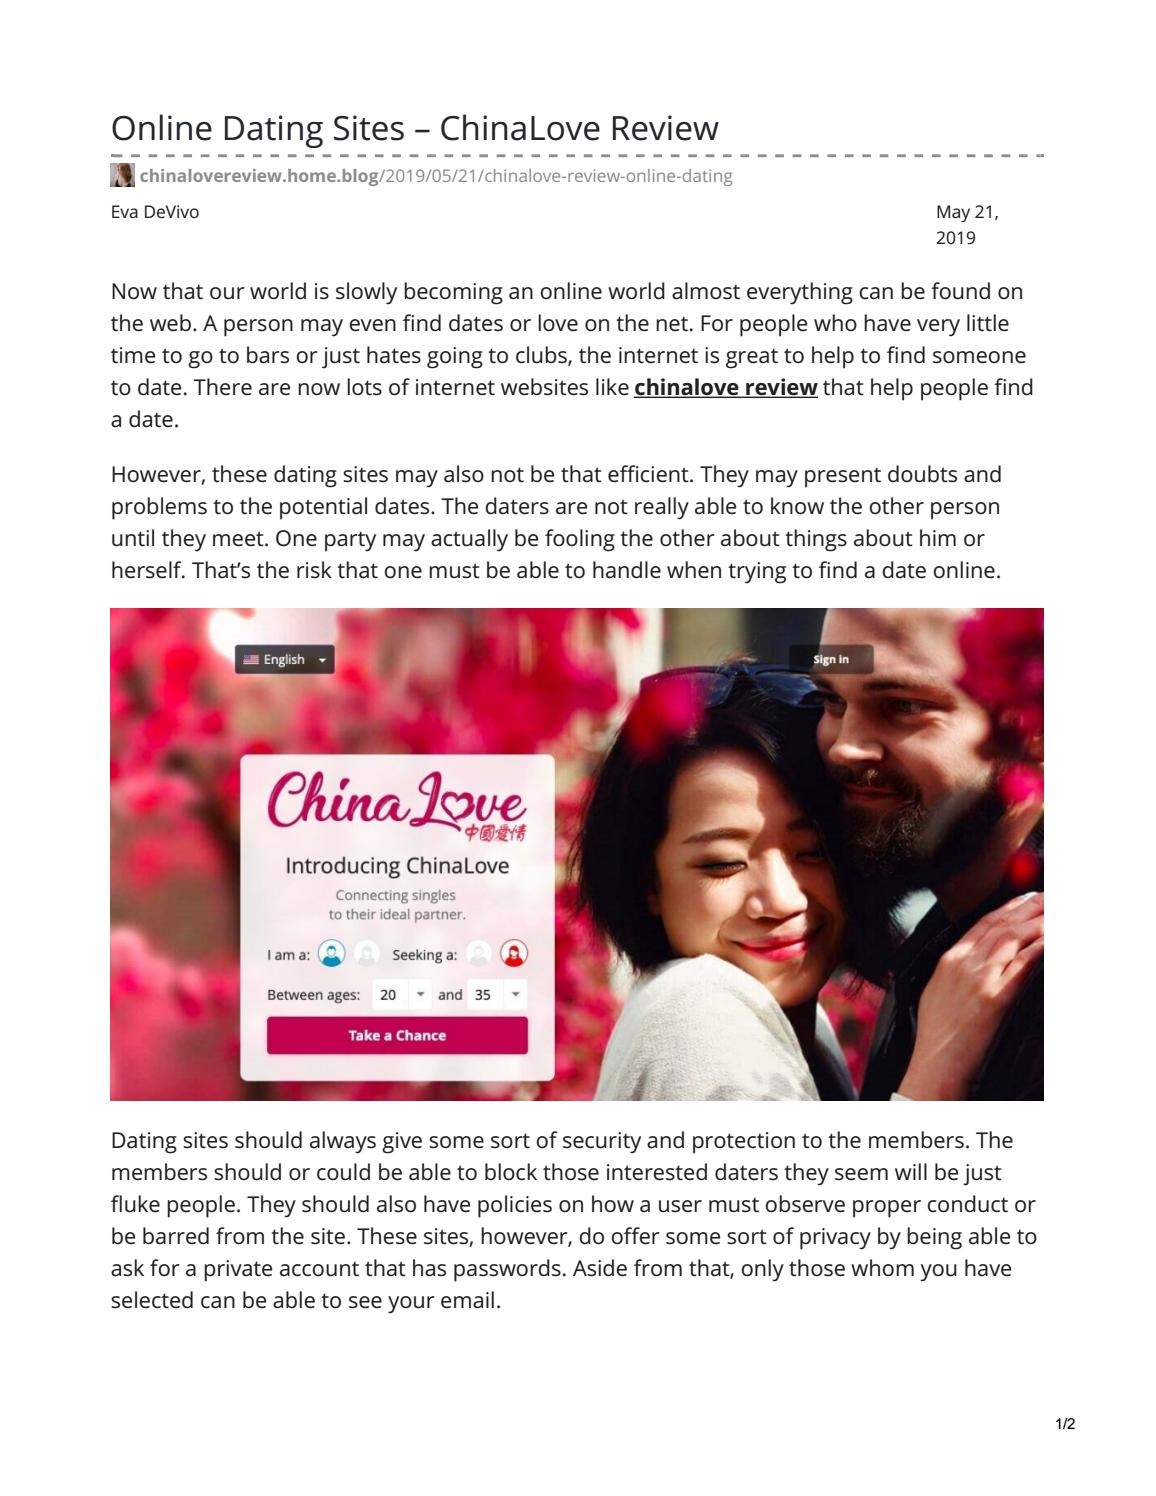 35 + dating sites